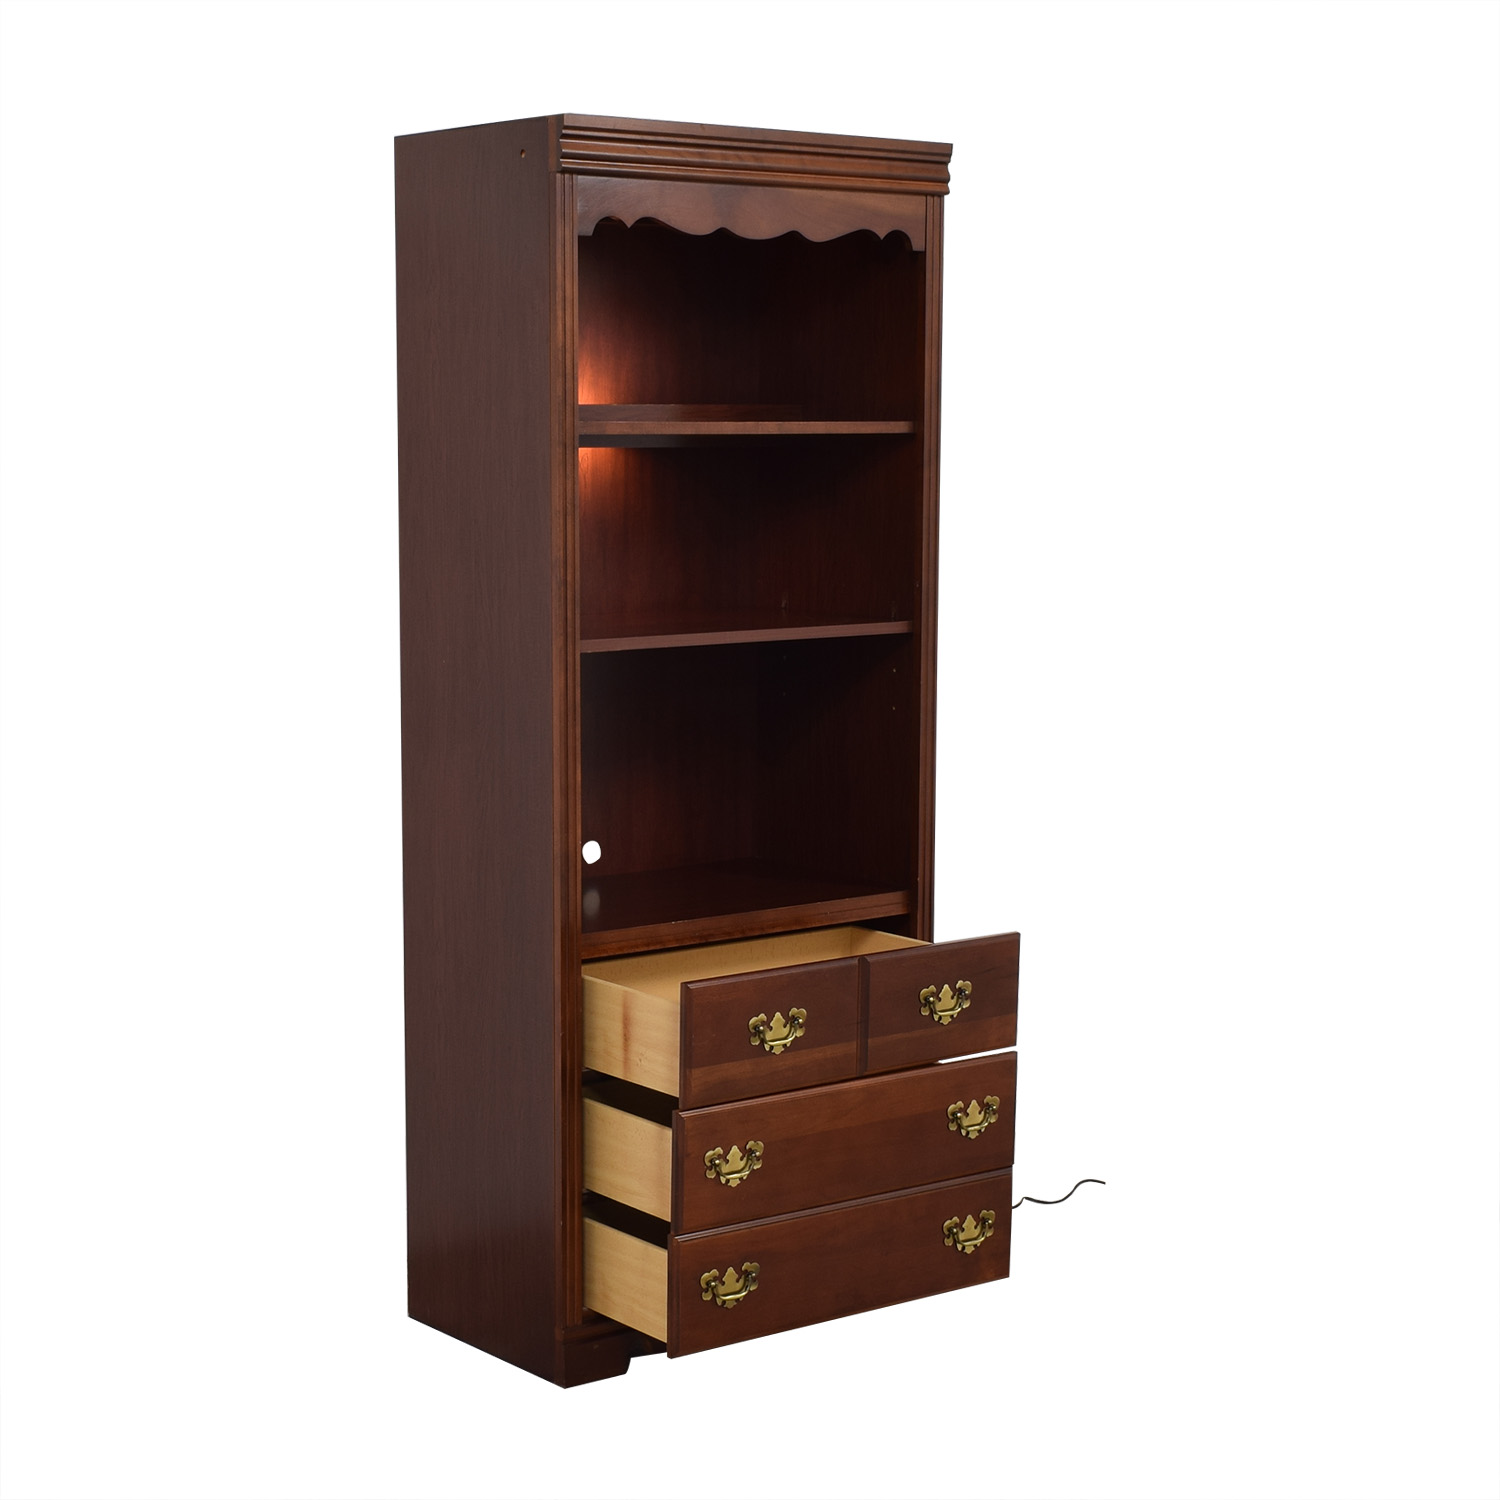 buy Broyhill Furniture Broyhill Book Case with Light online